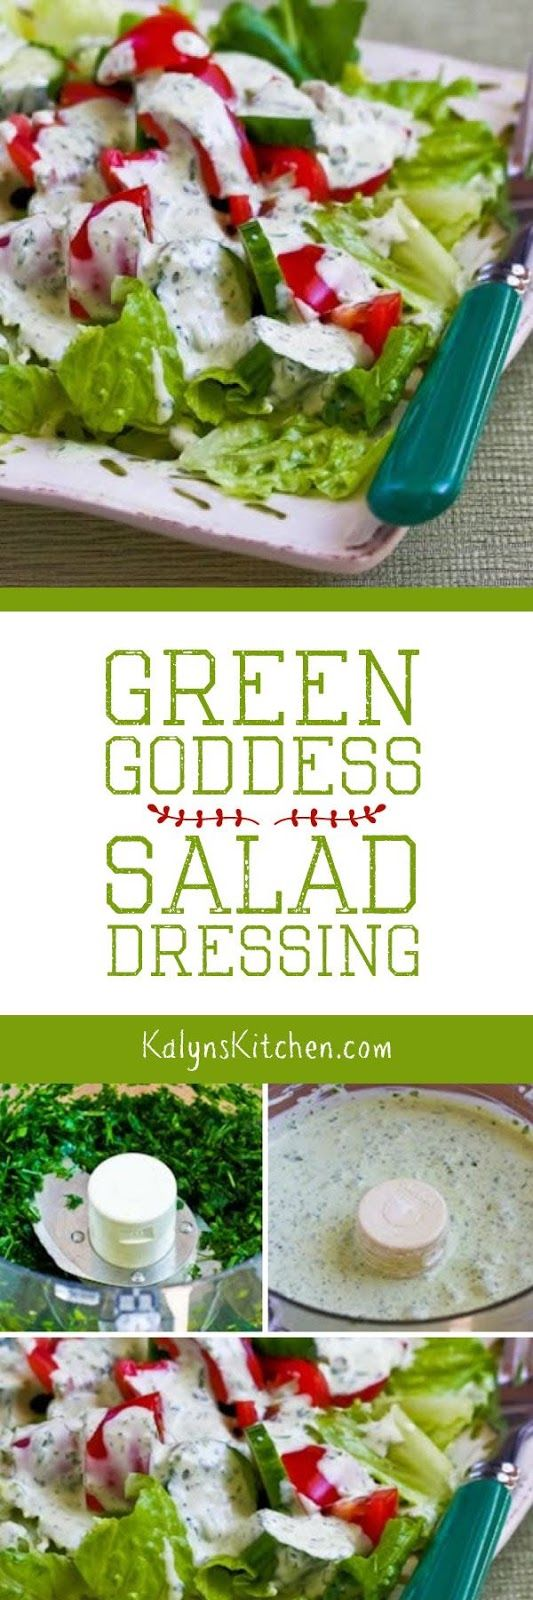 As soon as fresh tarragon starts coming up in the garden I think about making this Green Goddess Salad Dressing. This classic salad dressing is always a hit and it's low-carb, Keto, low-glycemic, gluten-free, and South Beach Diet friendly! [found on KalynsKitchen.com]